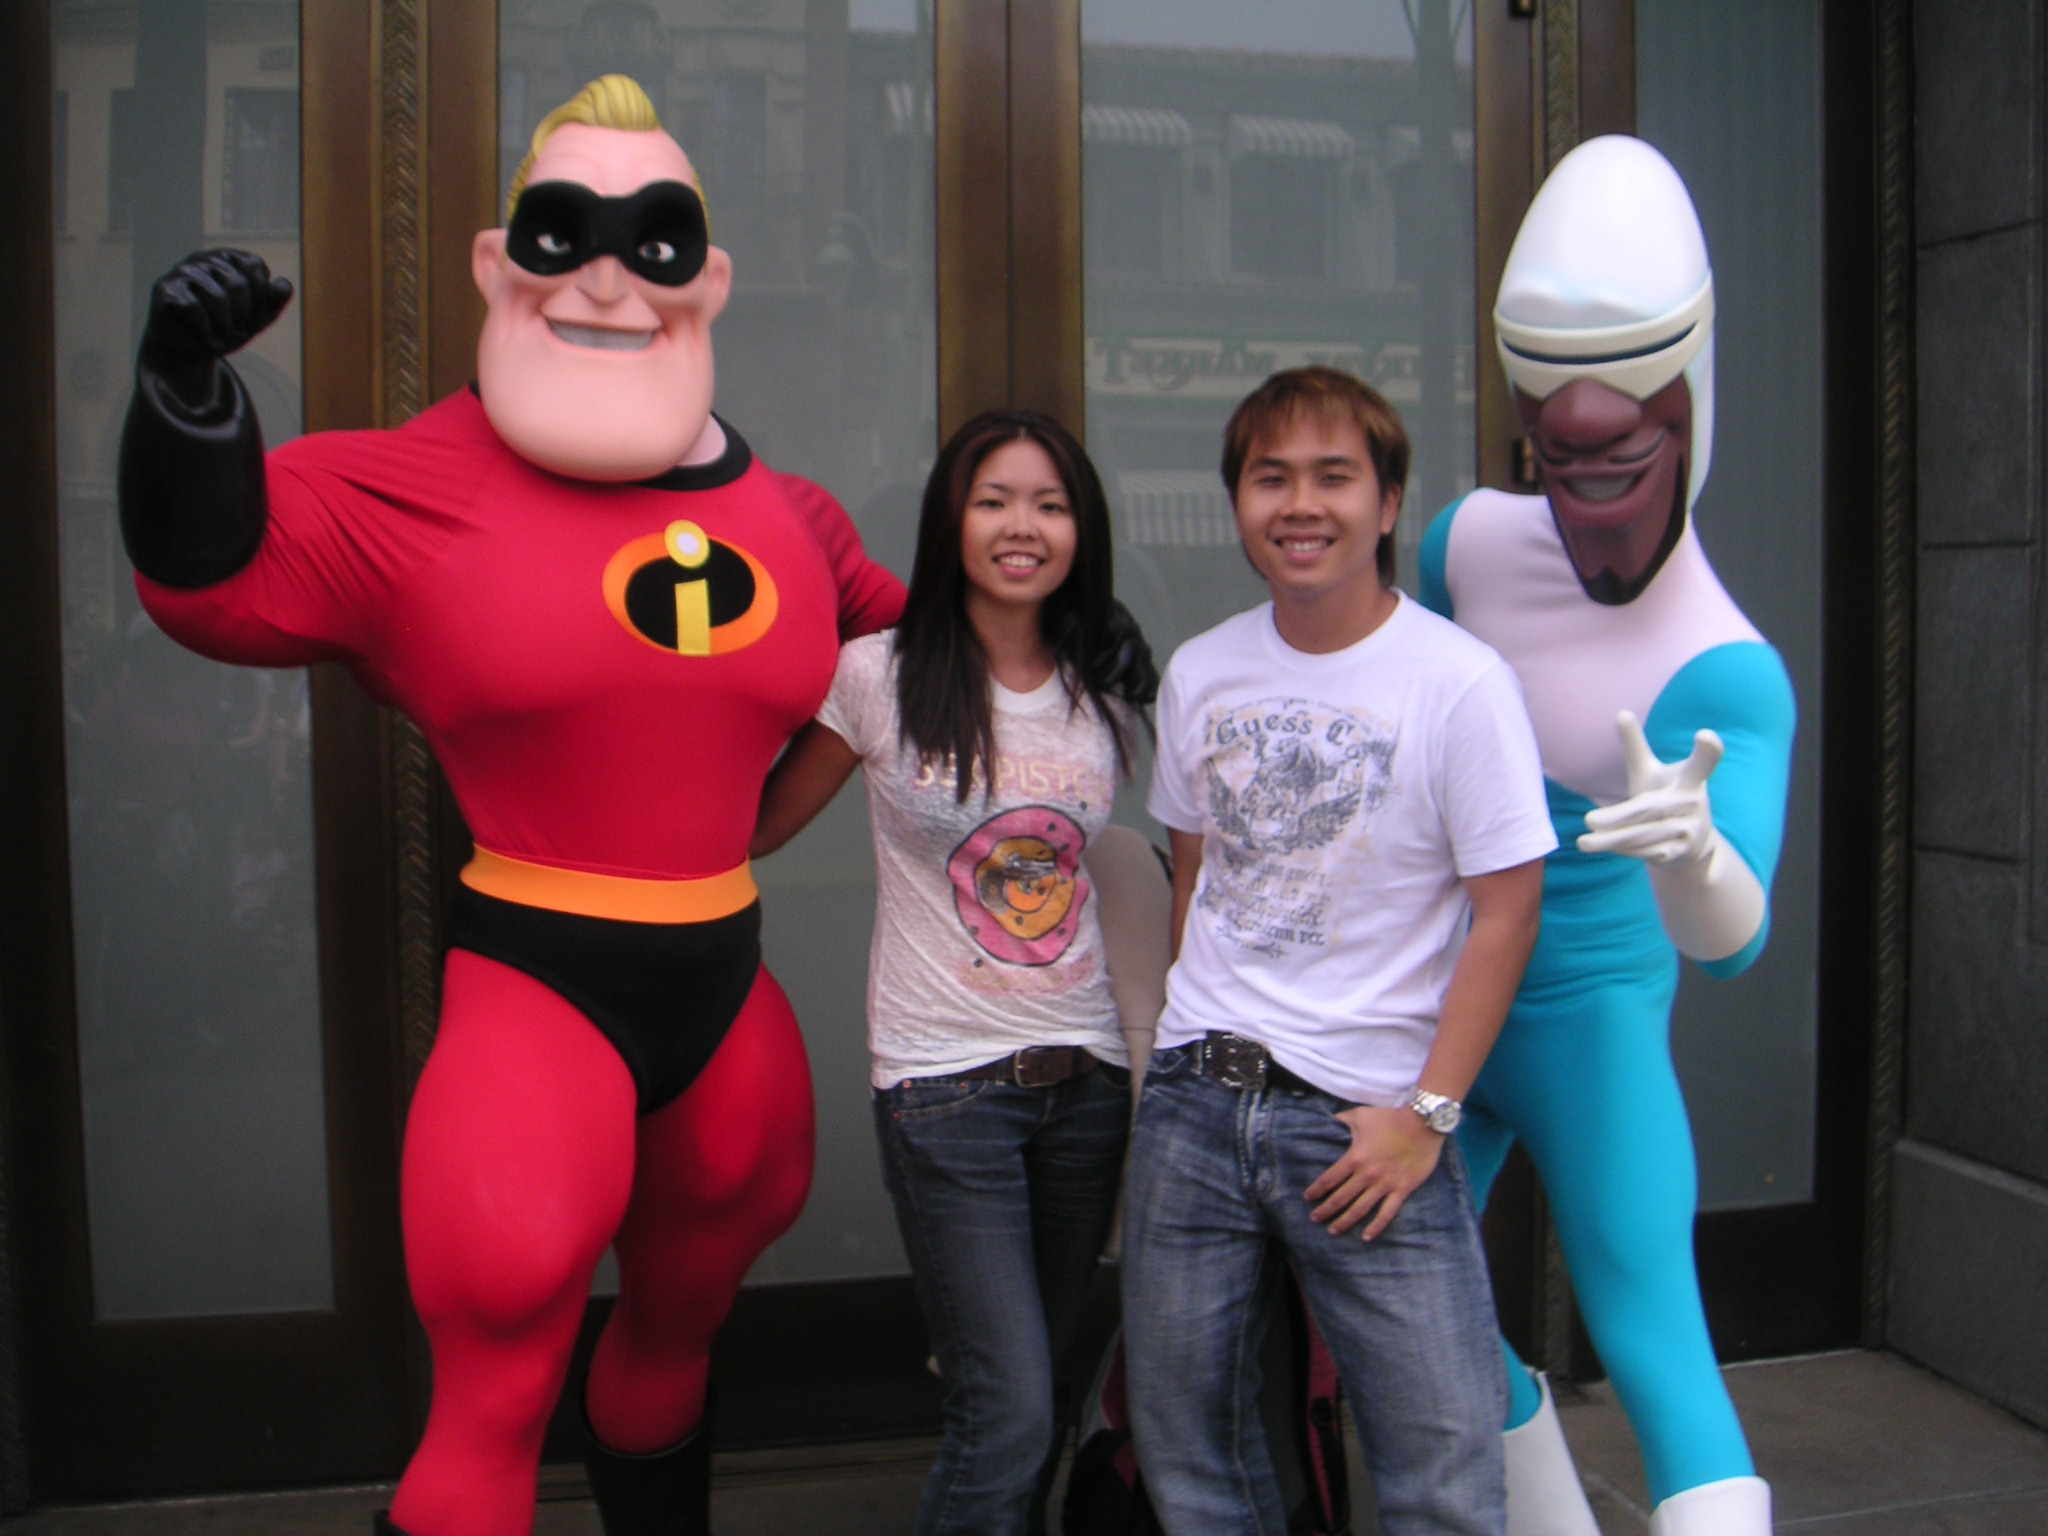 Mr Incredible & Frozone